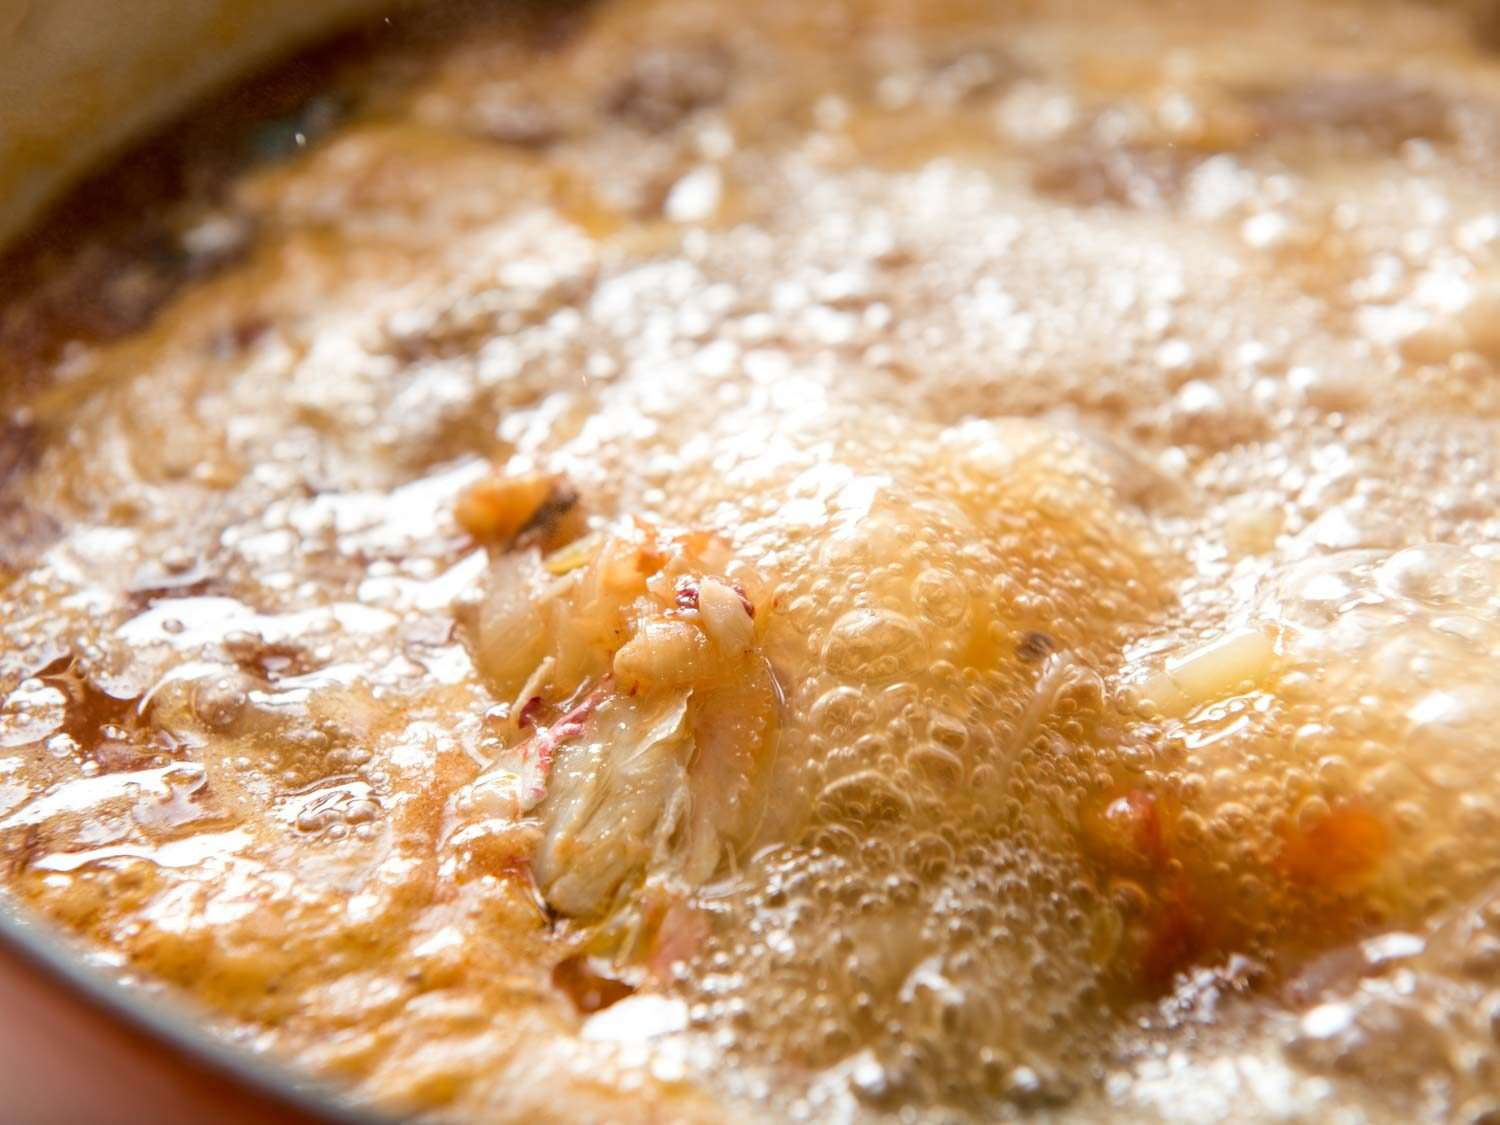 Boiling the fish stock for bouillabaisse